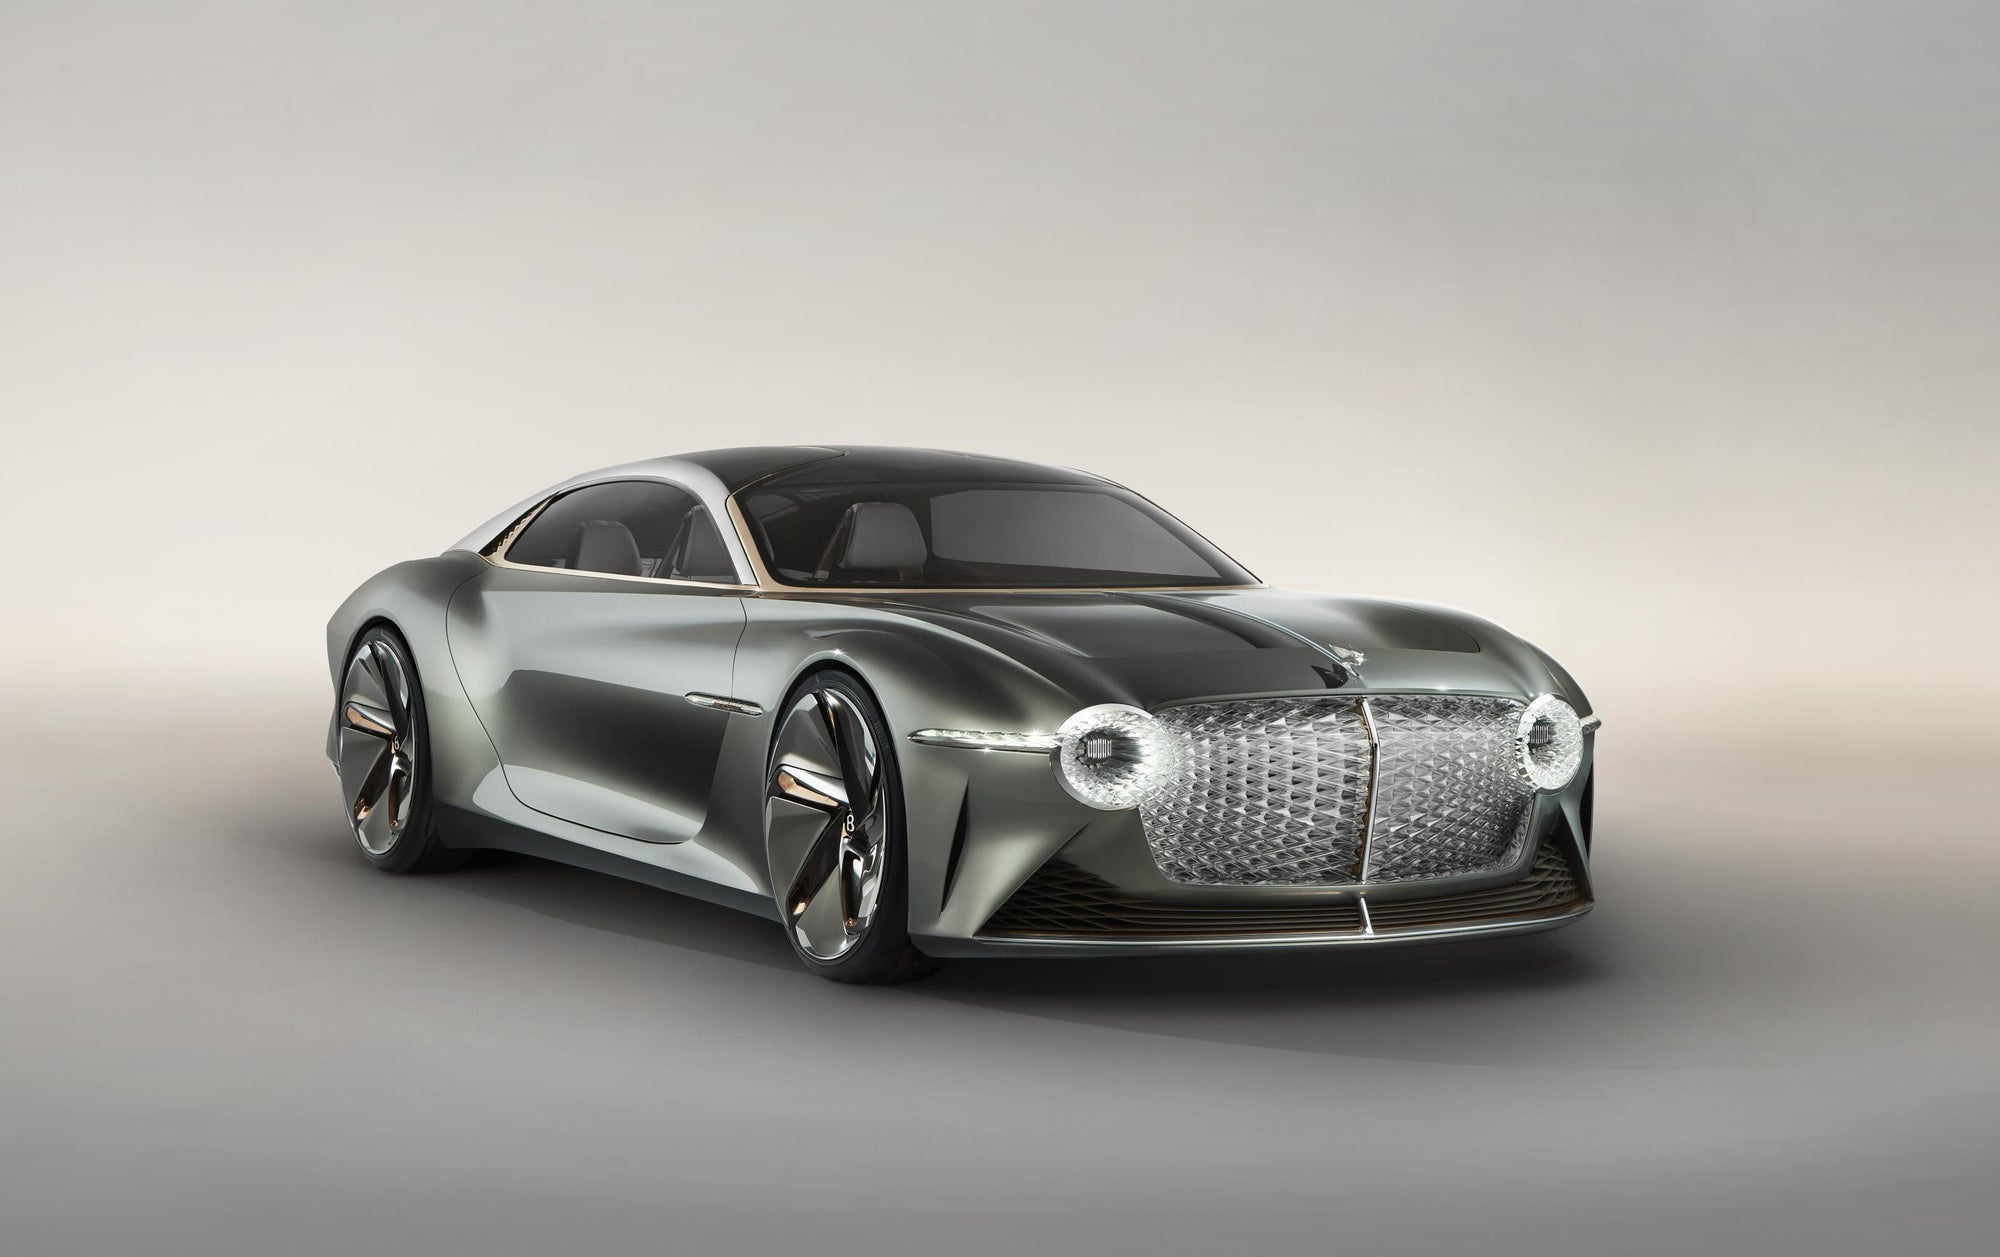 Introducing The Future: 2035 Bentley EX 100 GT Concept